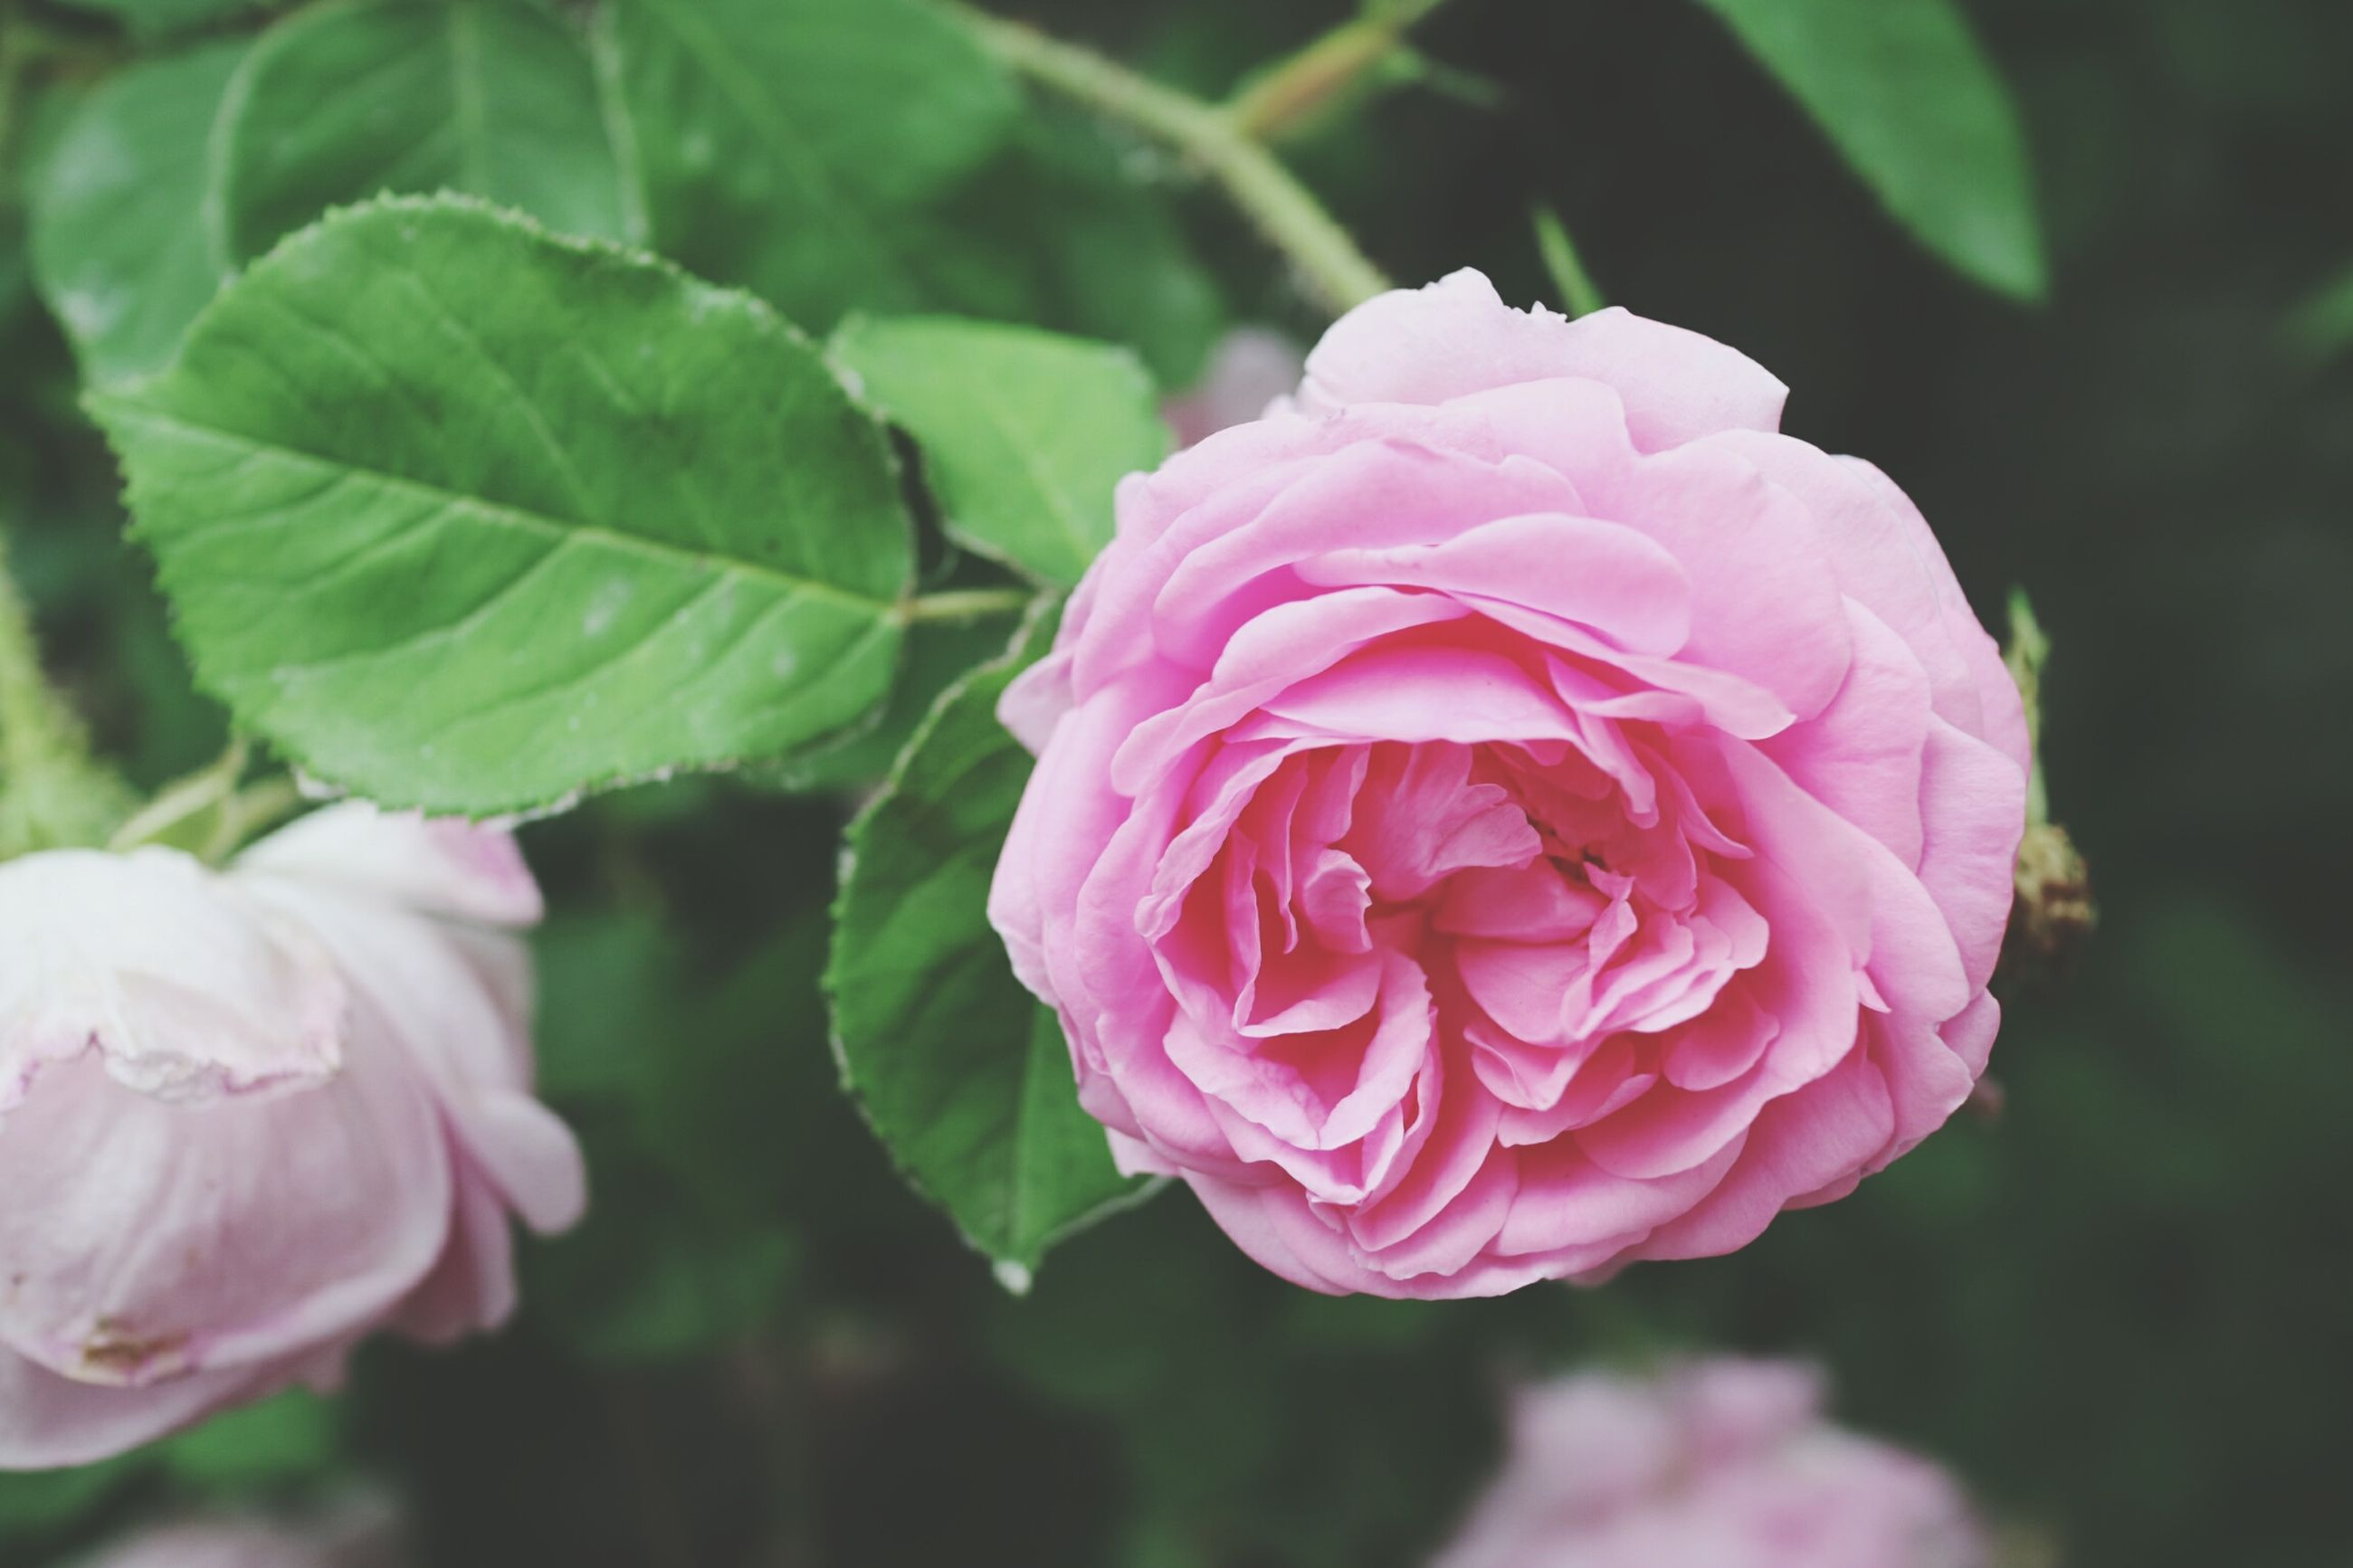 flower, freshness, petal, fragility, pink color, flower head, rose - flower, beauty in nature, growth, close-up, focus on foreground, nature, blooming, plant, in bloom, leaf, pink, blossom, single flower, rose